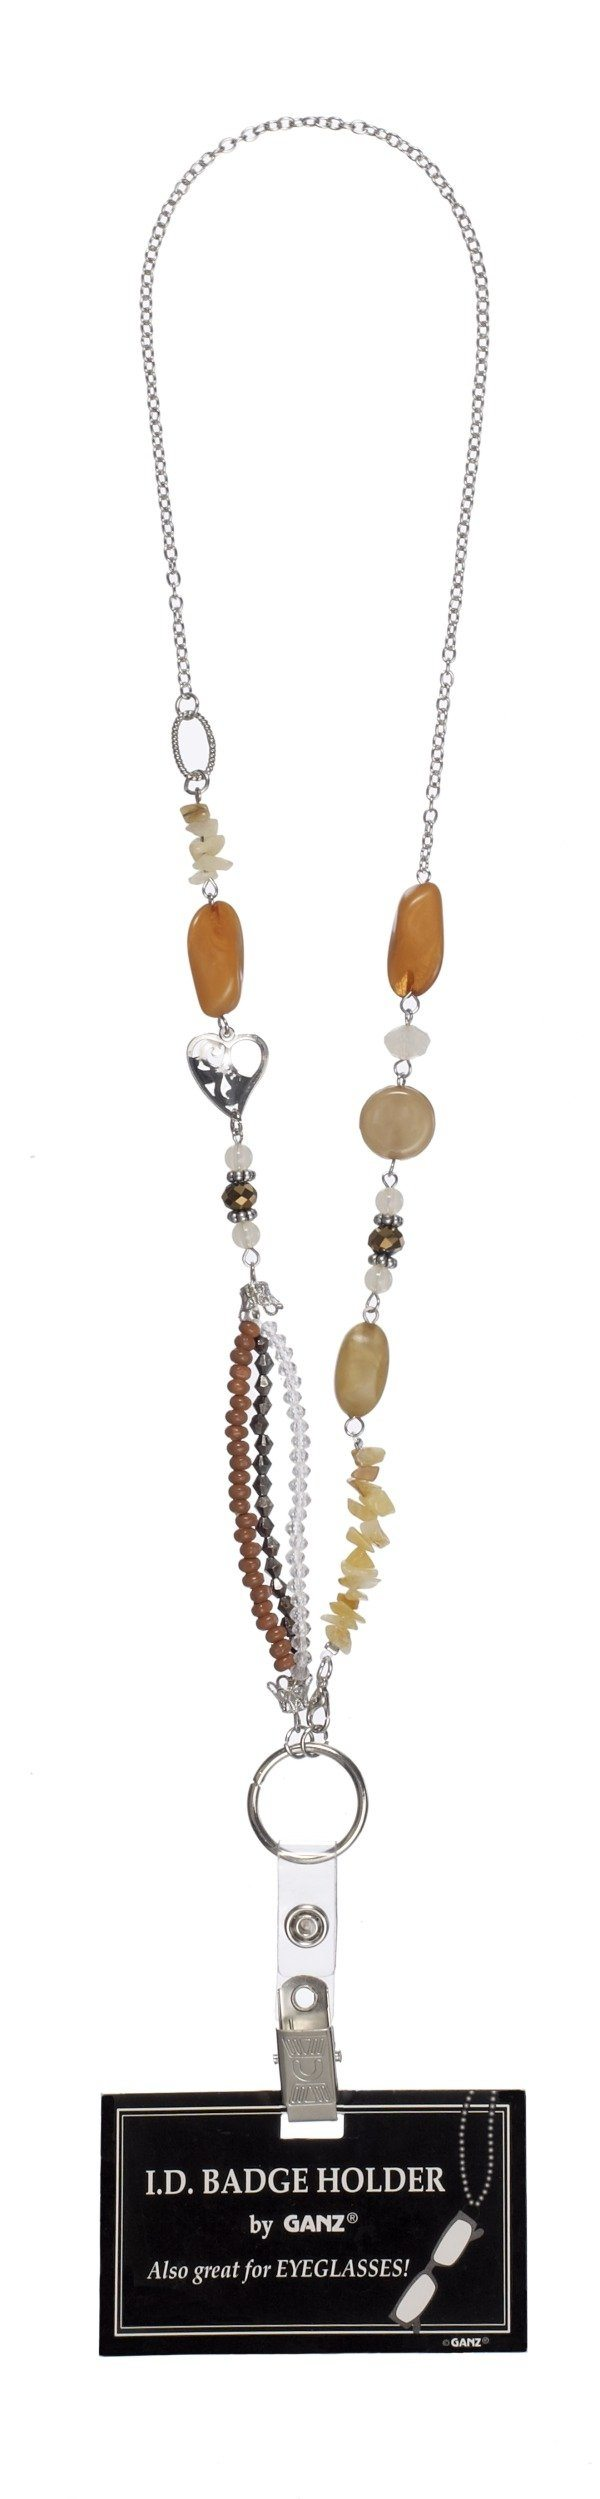 Naturals Beaded ID Badge Holder-Eyeglass Holder Necklace - Brown